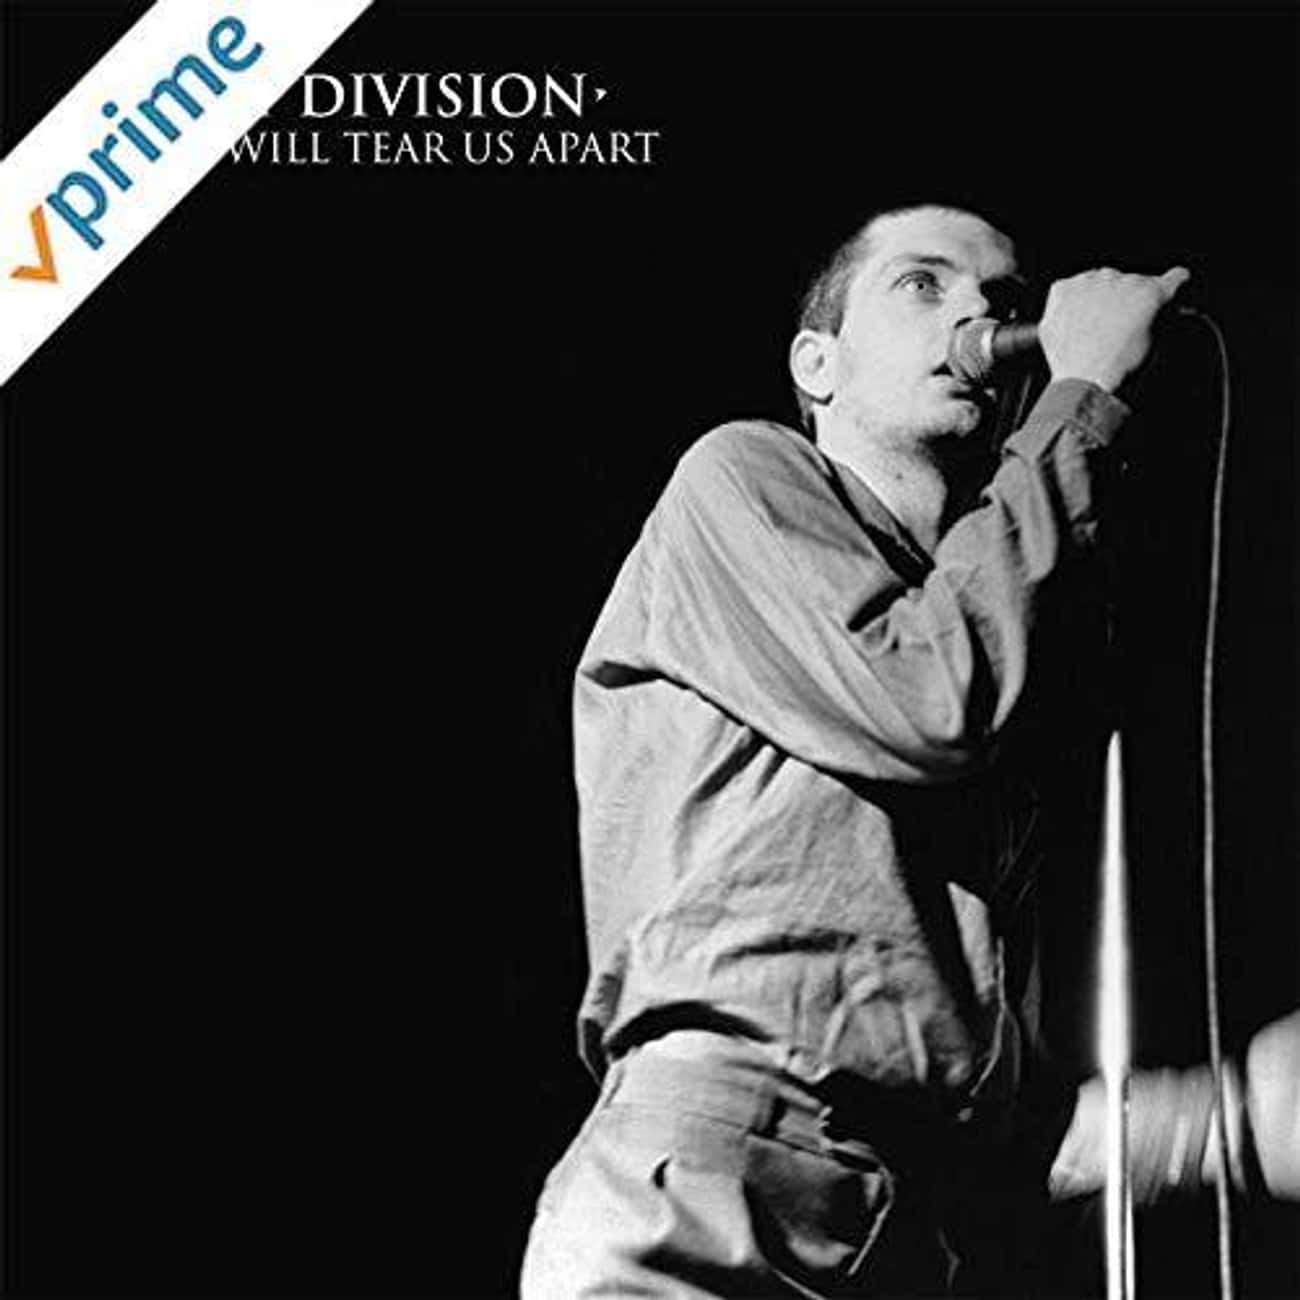 Joy Division - 'Love Will Tear is listed (or ranked) 3 on the list 25 Depressing Stories Behind Some Of The Most Popular Songs In Modern History